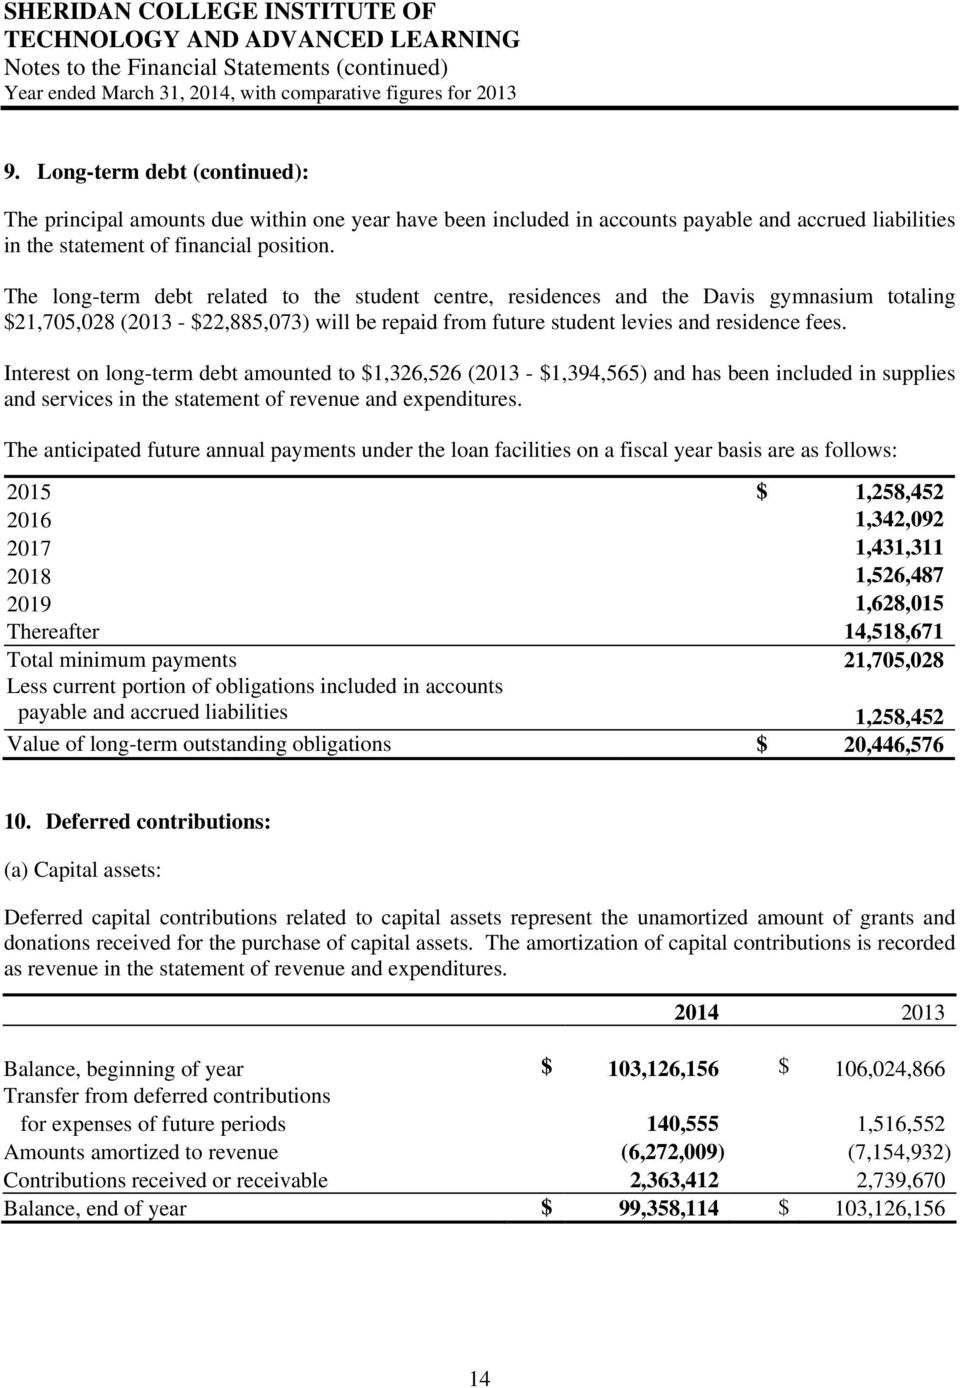 Interest on long-term debt amounted to $1,326,526 (2013 - $1,394,565) and has been included in supplies and services in the statement of revenue and expenditures.